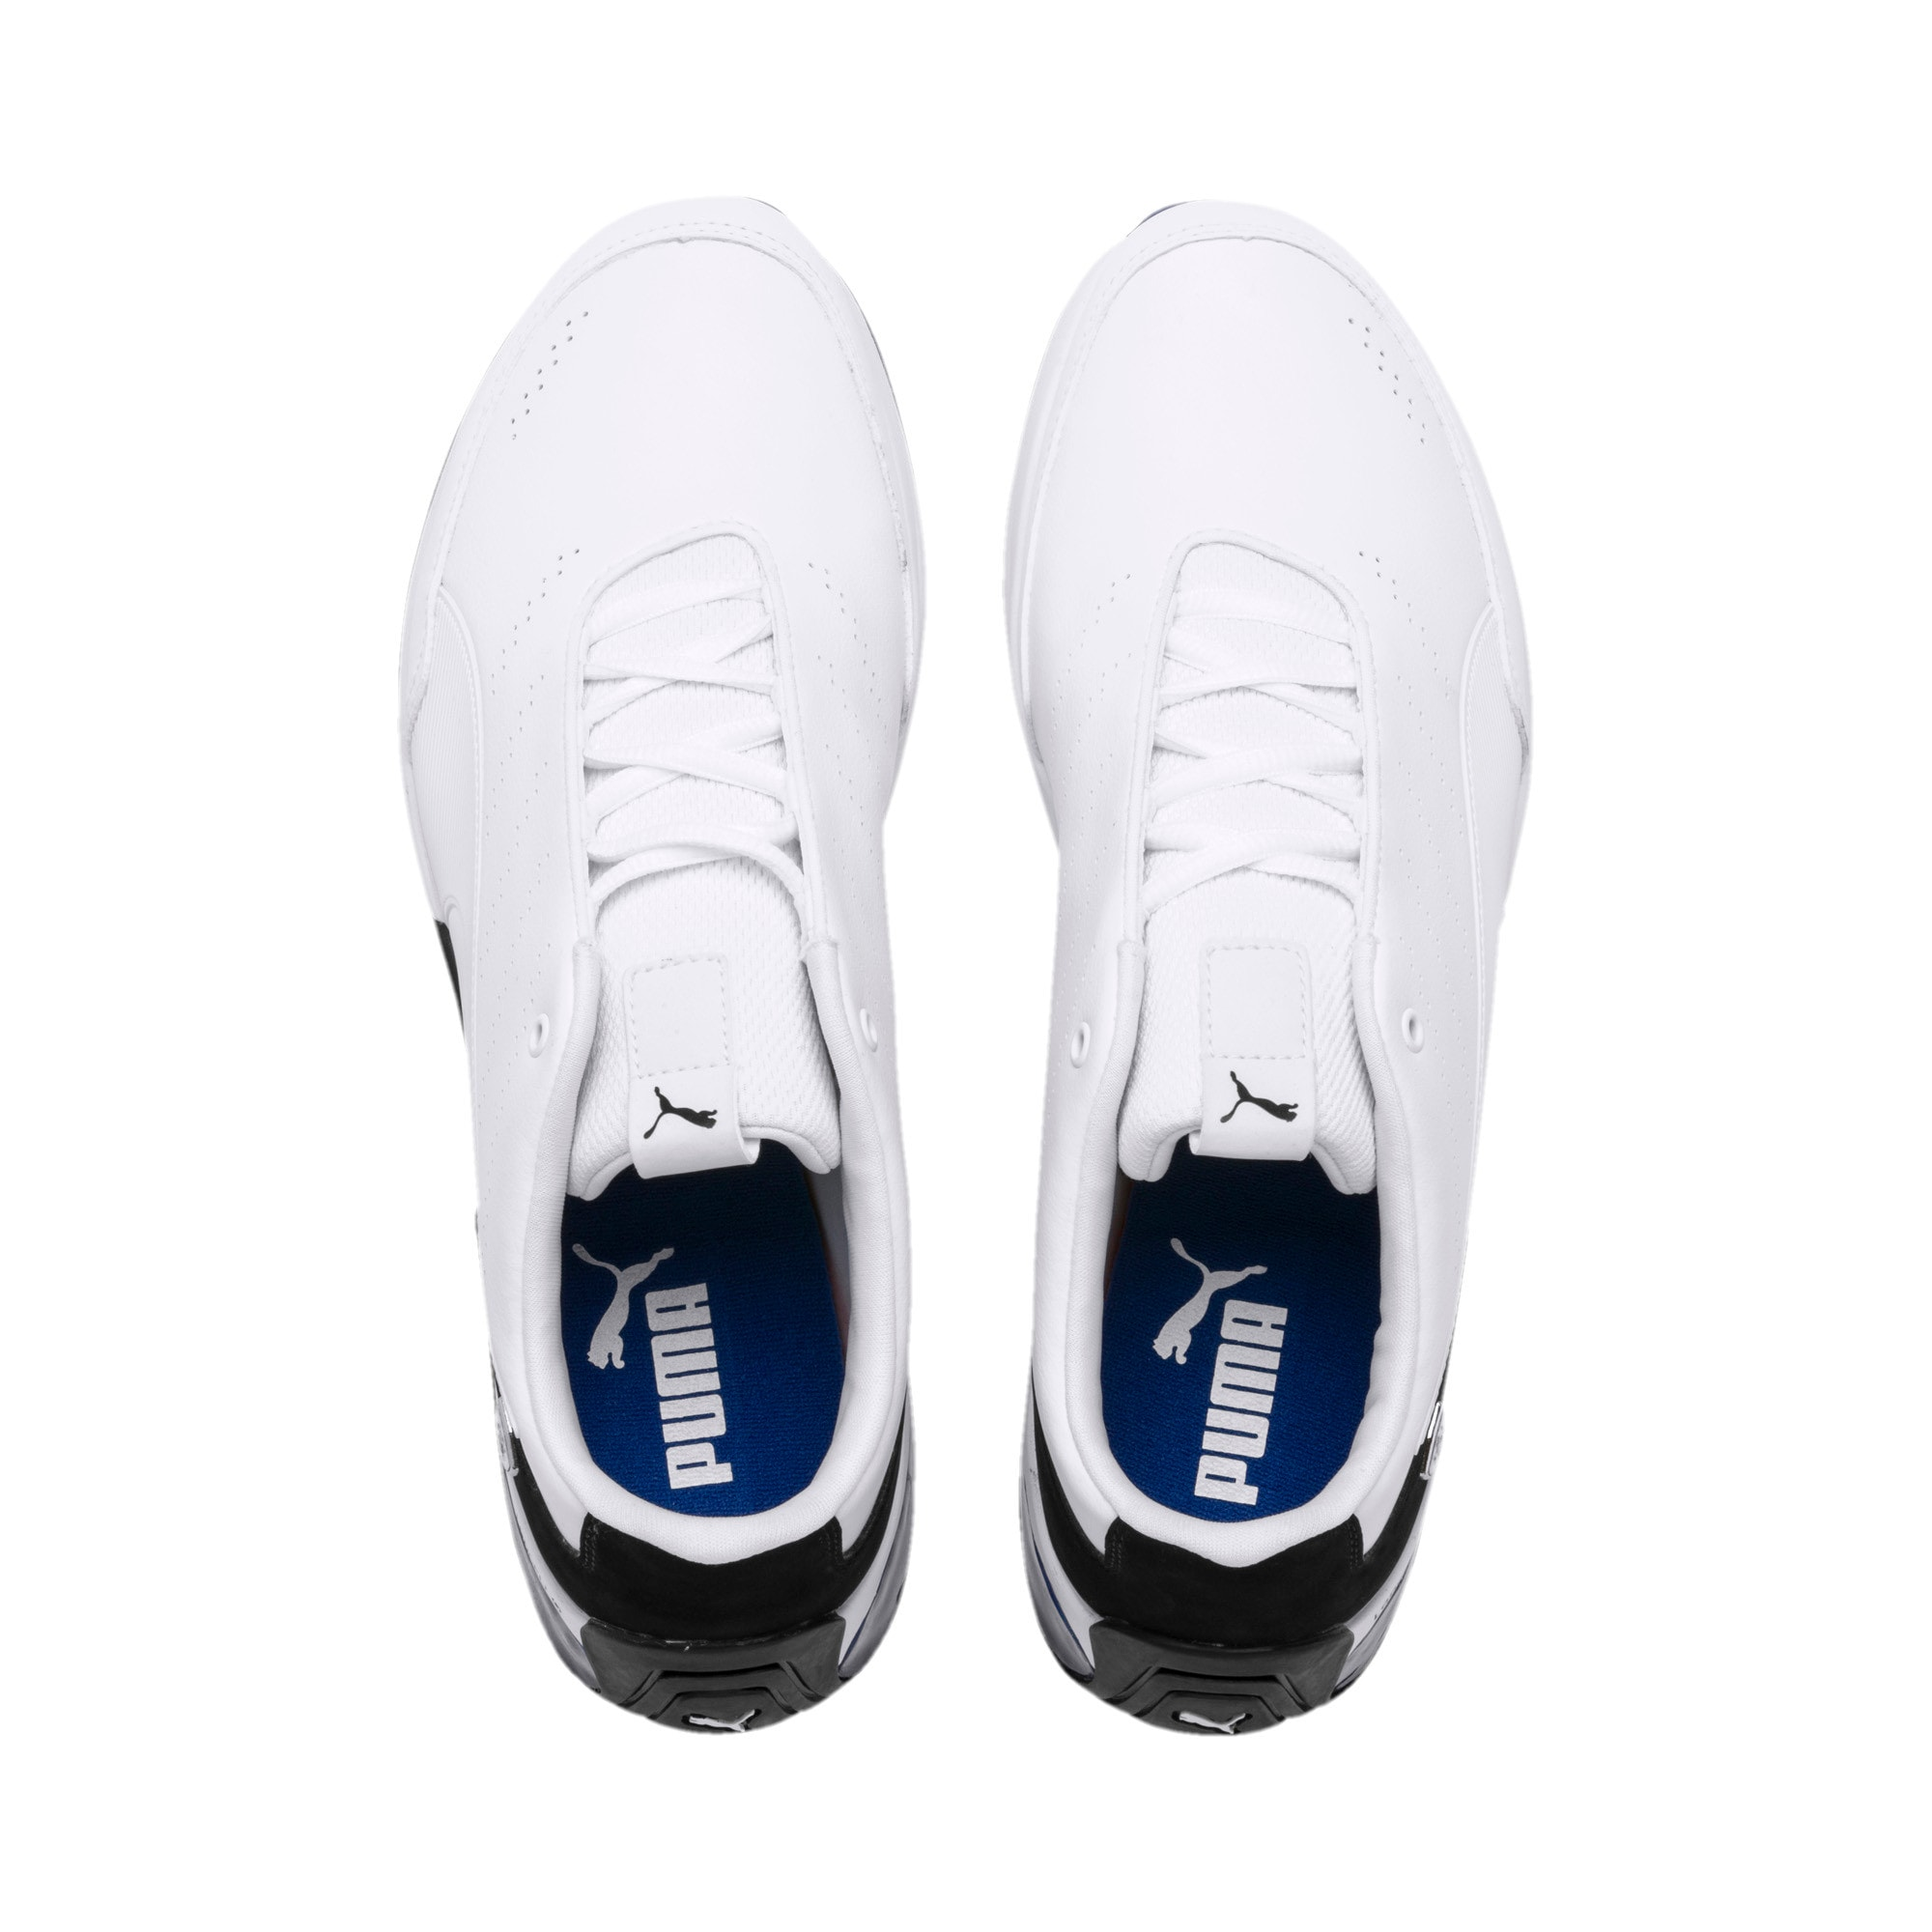 Thumbnail 8 of Ferrari Kart Cat X Trainers, Puma White-Puma Black, medium-IND